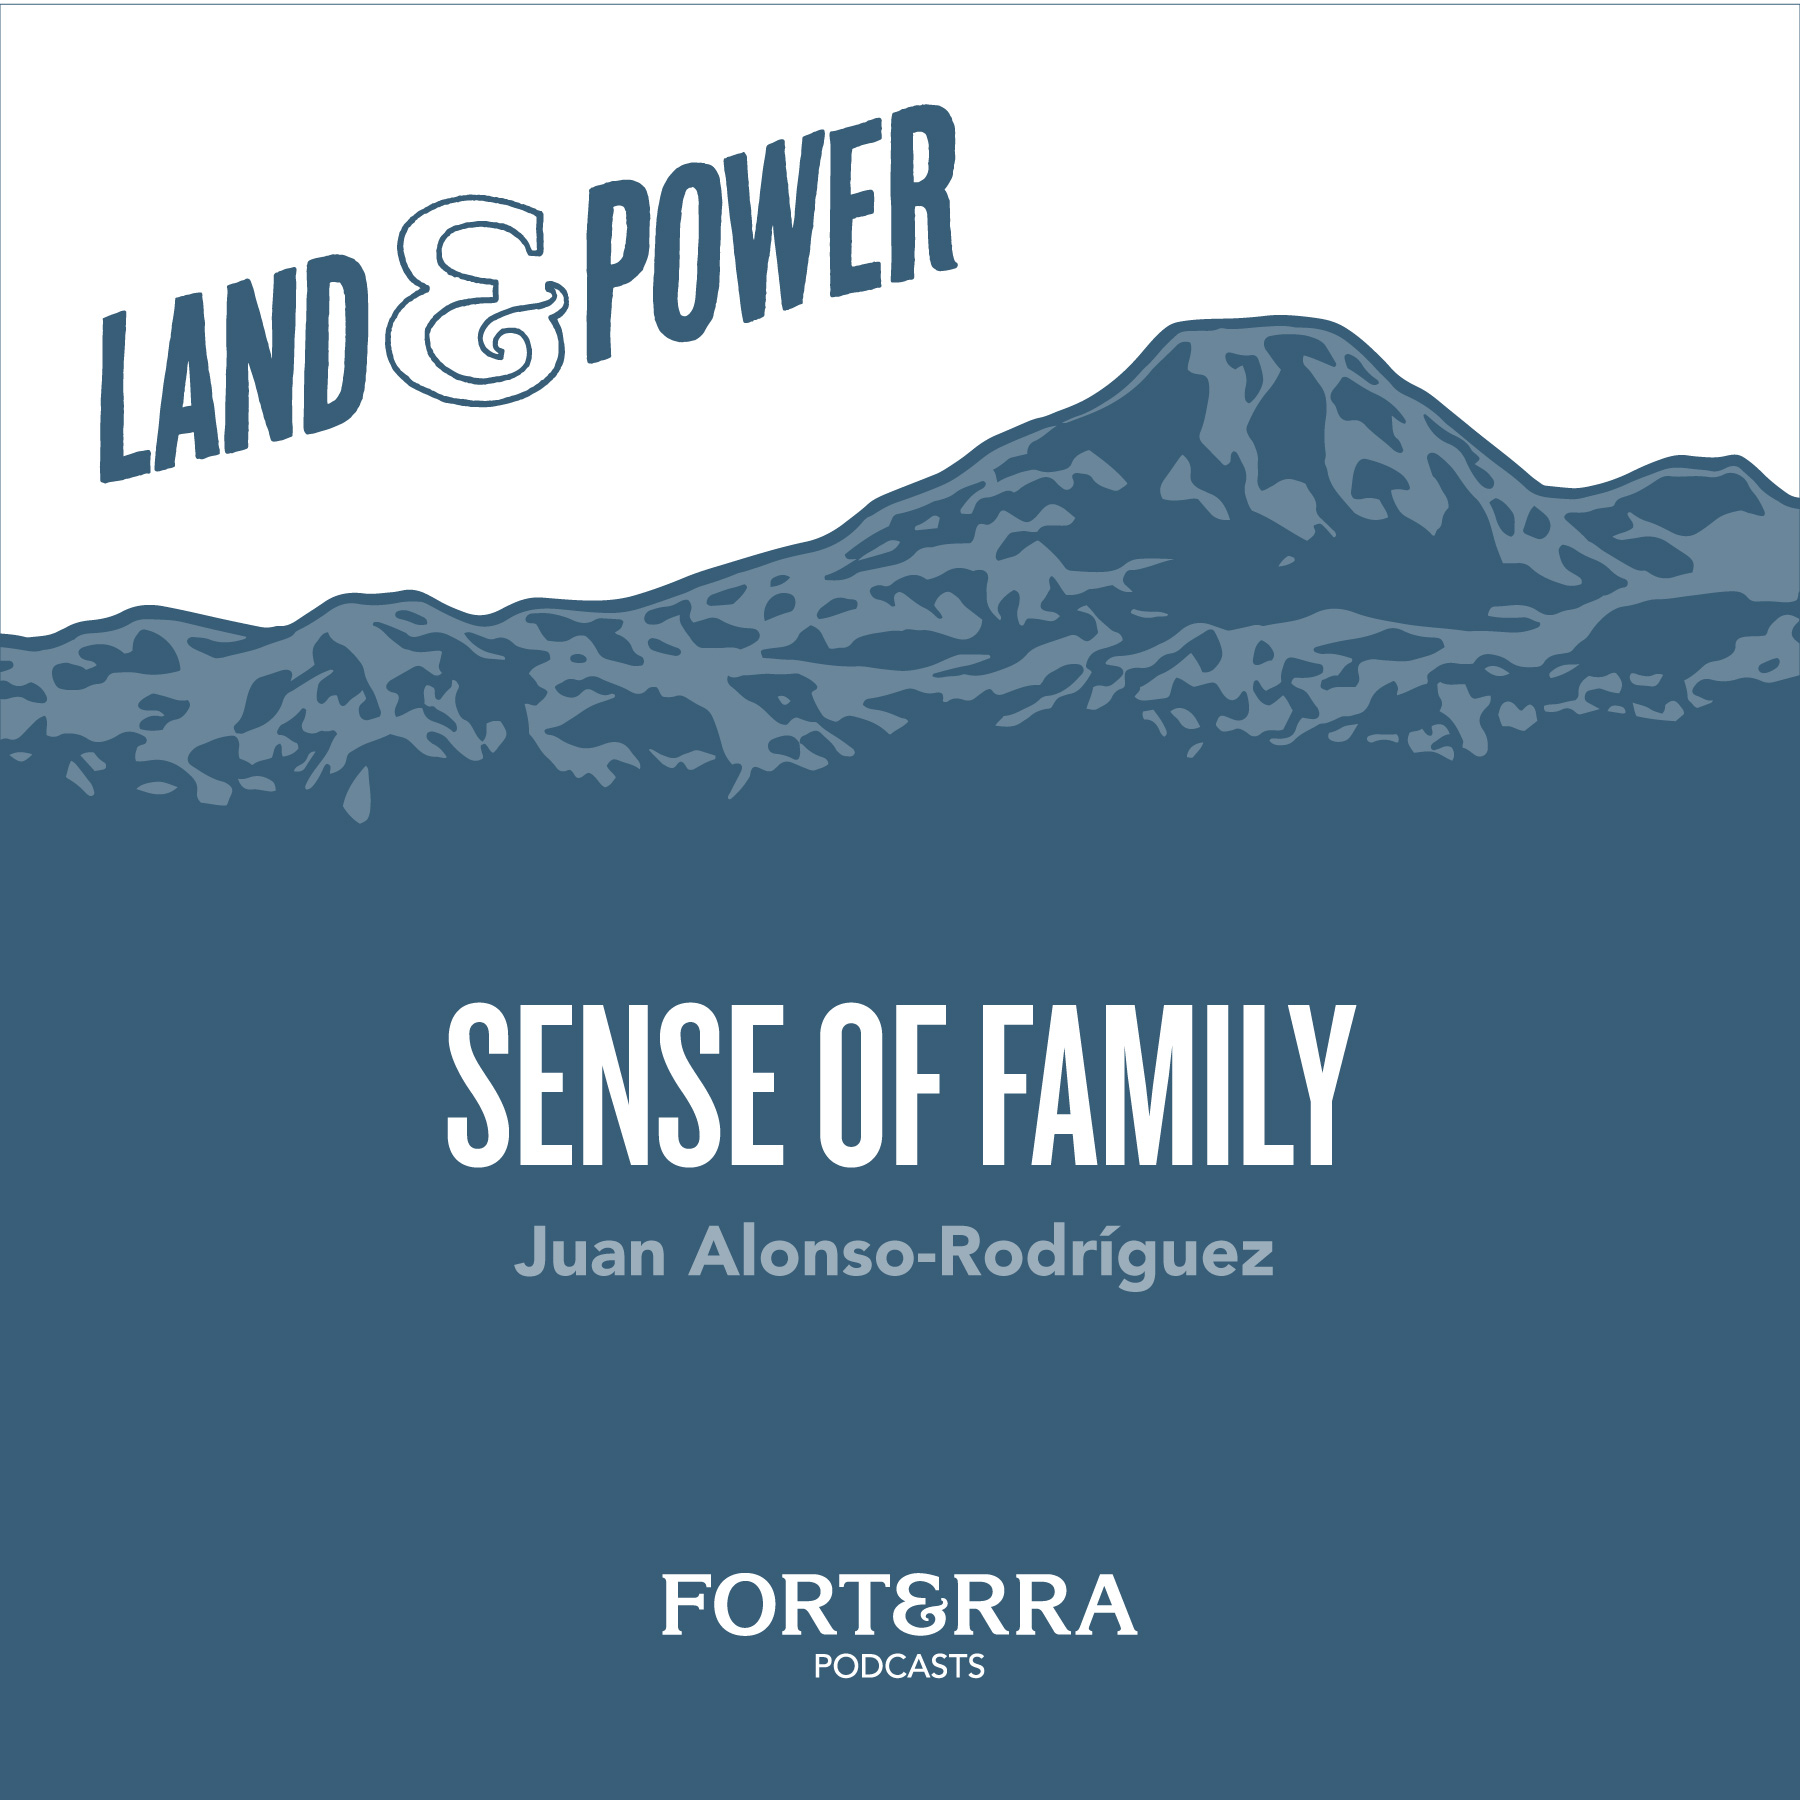 Land & Power: Sense of family with Juan Alonso-Rodríguez